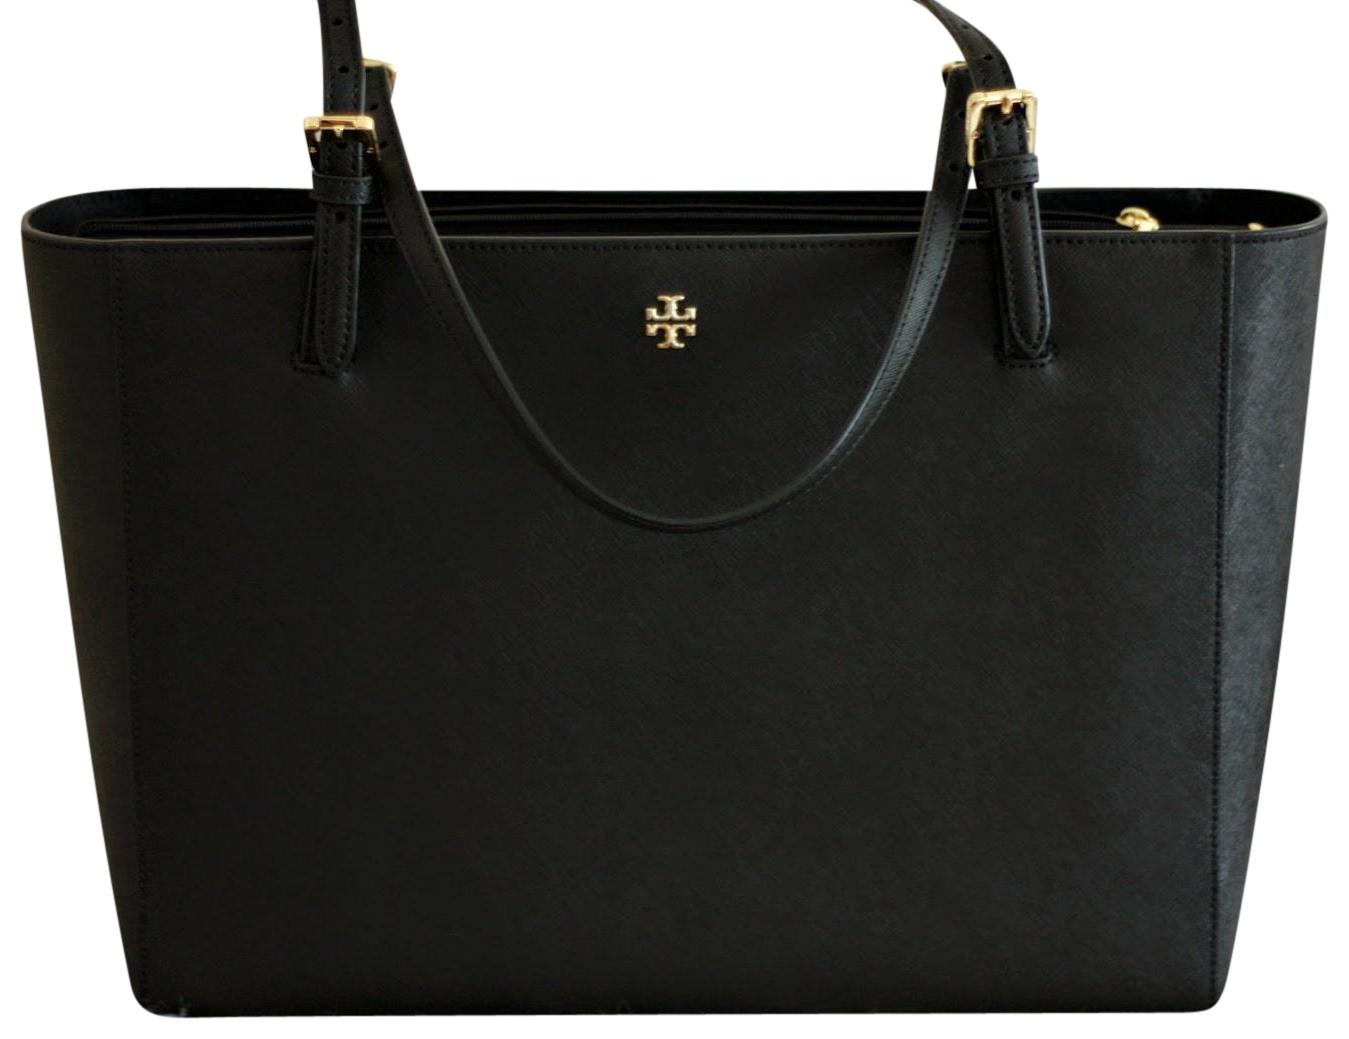 8a9190416 ... cheap tory burch leather saffiano leather work tote large work classy  tote shoulder bag 9fba7 e7ccb